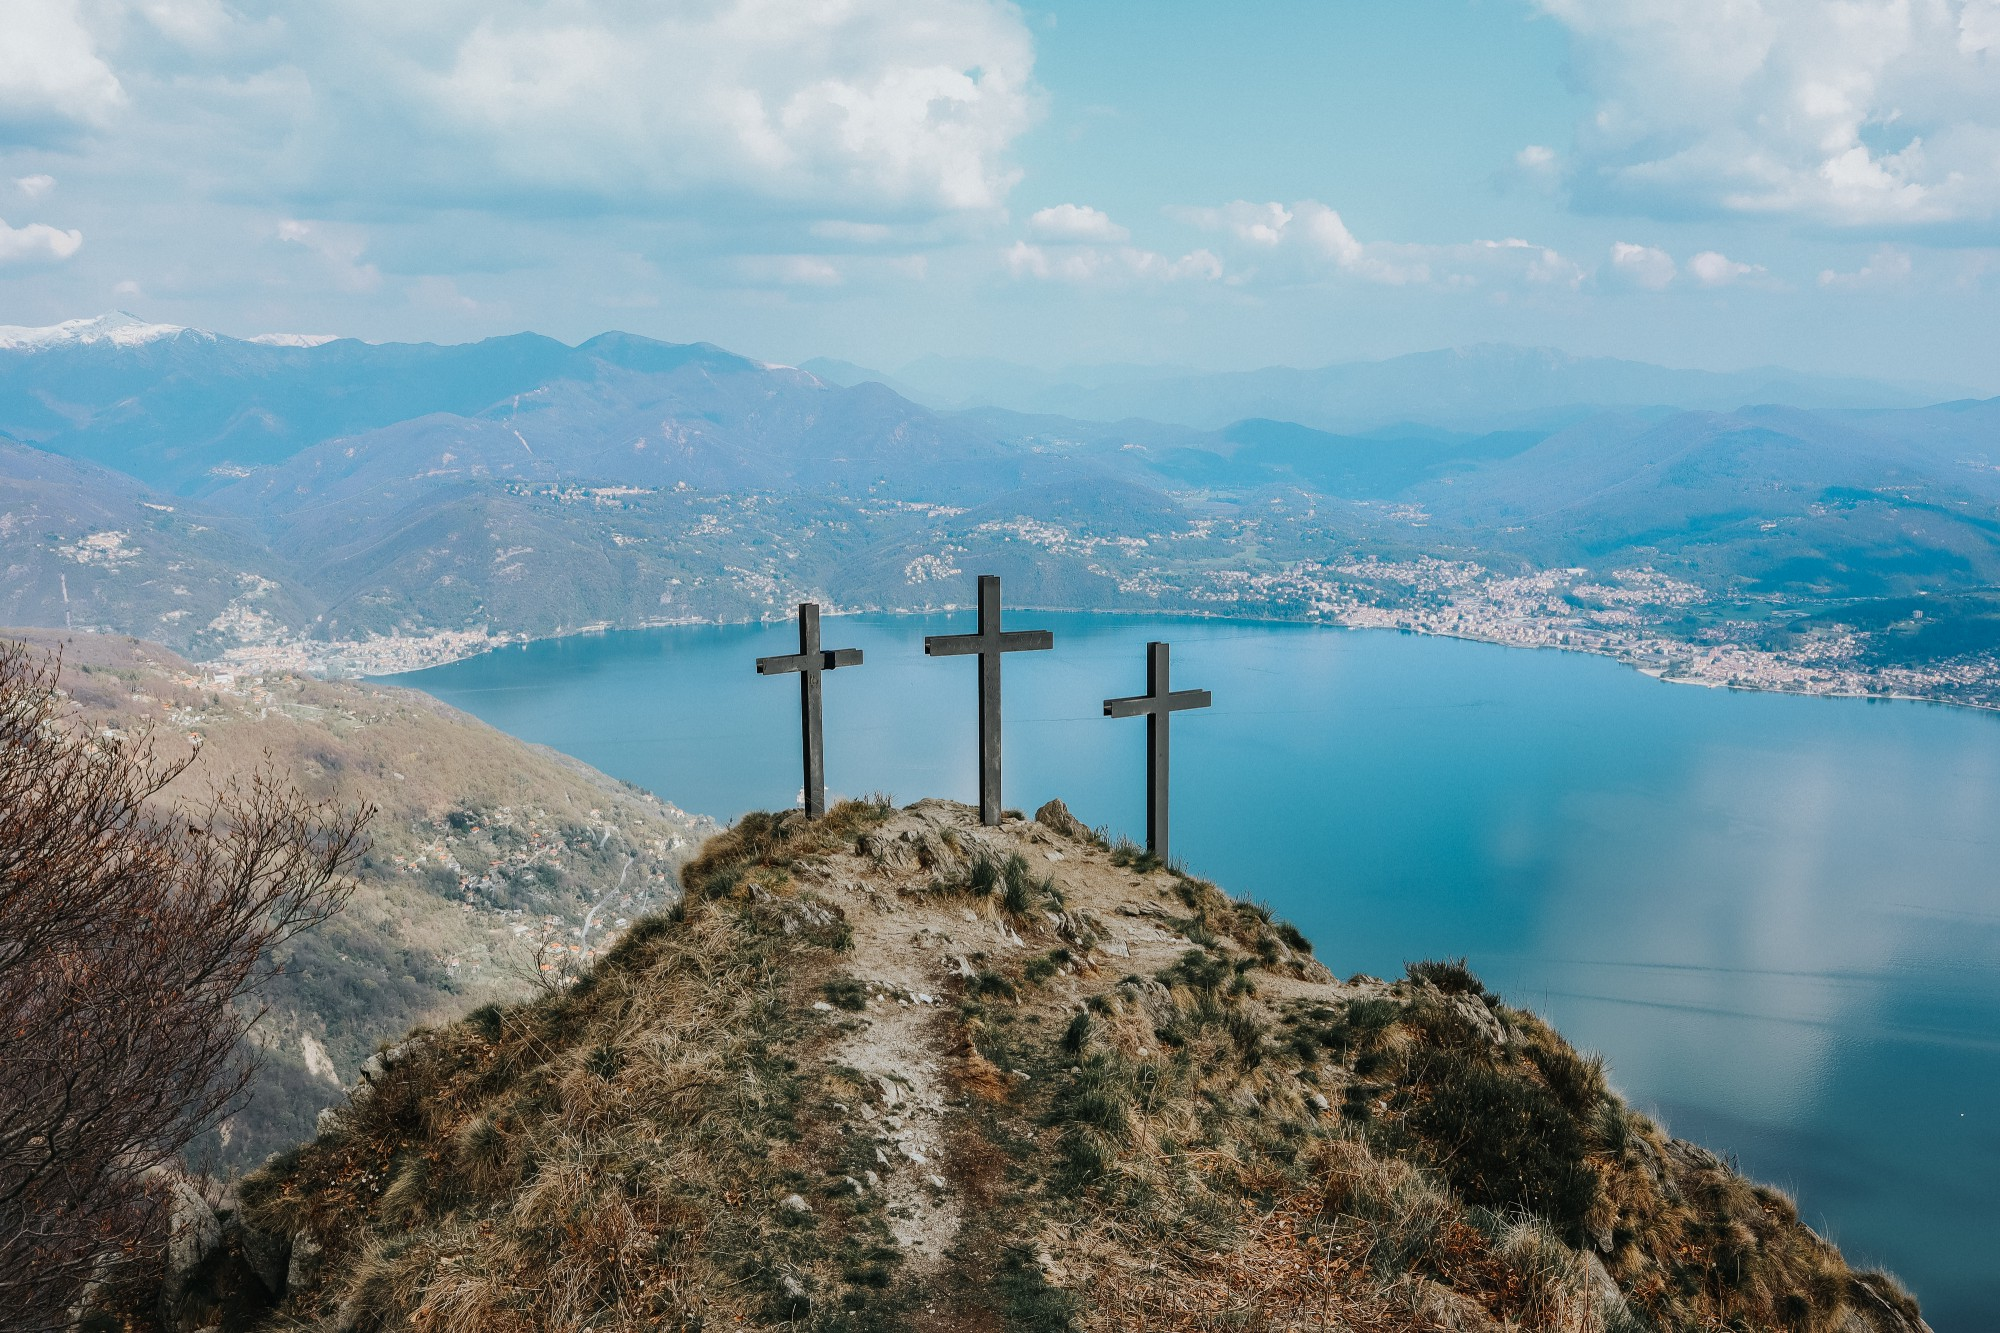 Three crosses on a sandy mountain overlooking a large body of bright blue water on a sunny day.